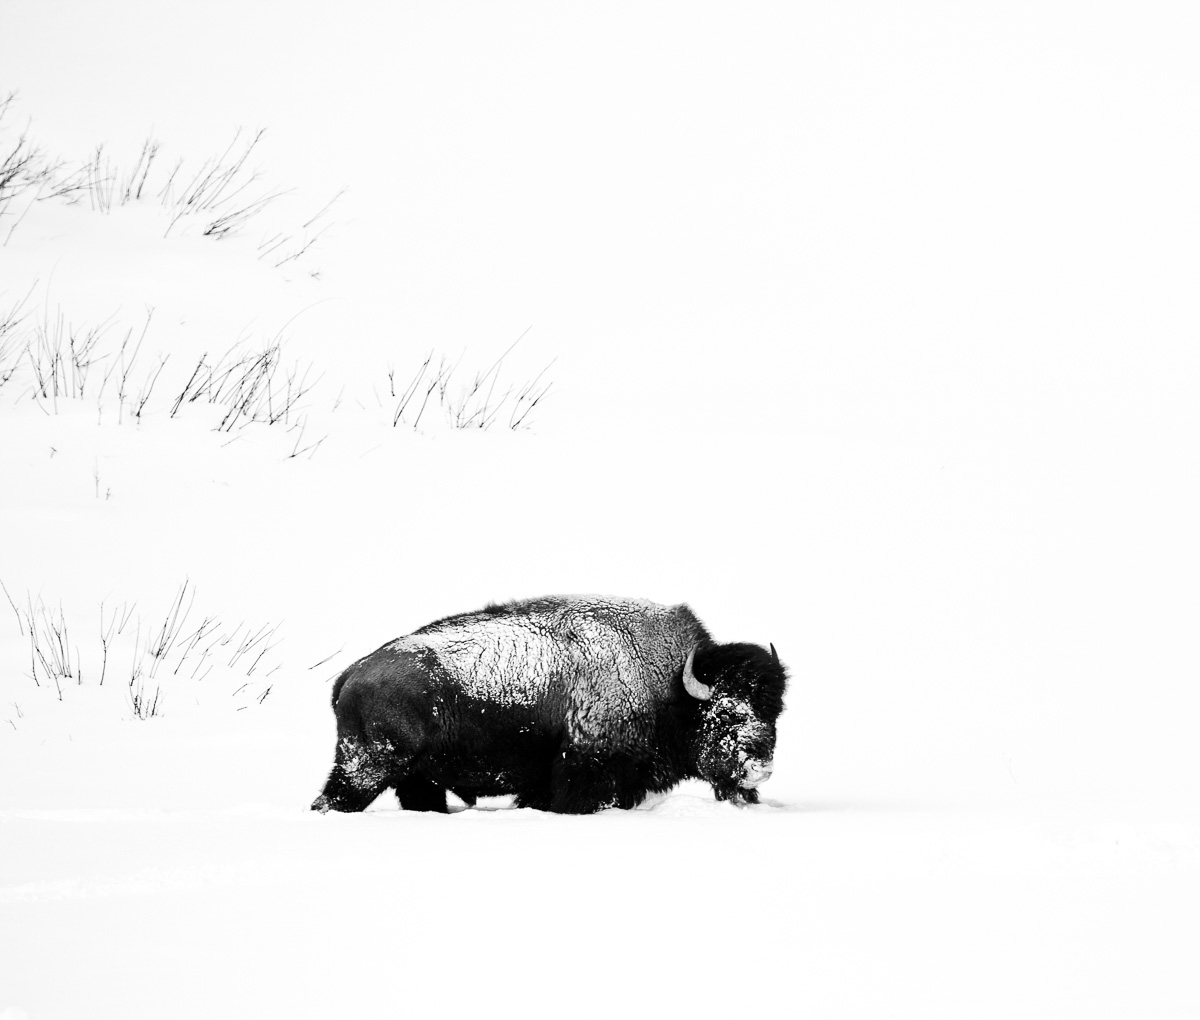 20110121_Yellowstone_0033BW